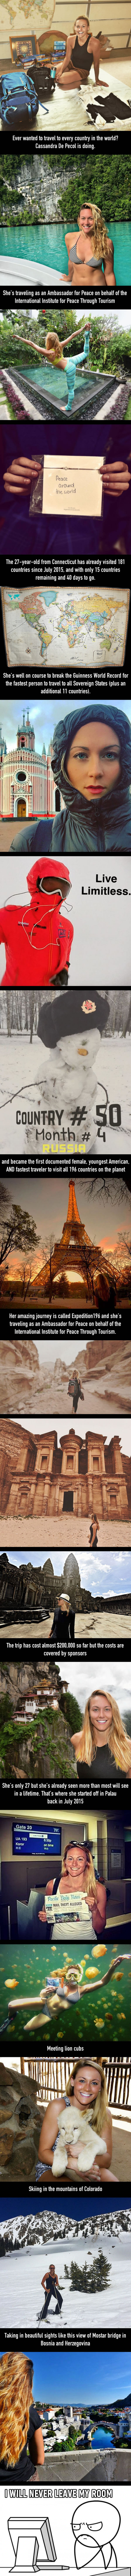 27 Year Old Girl Becomes First To Visit Every Country